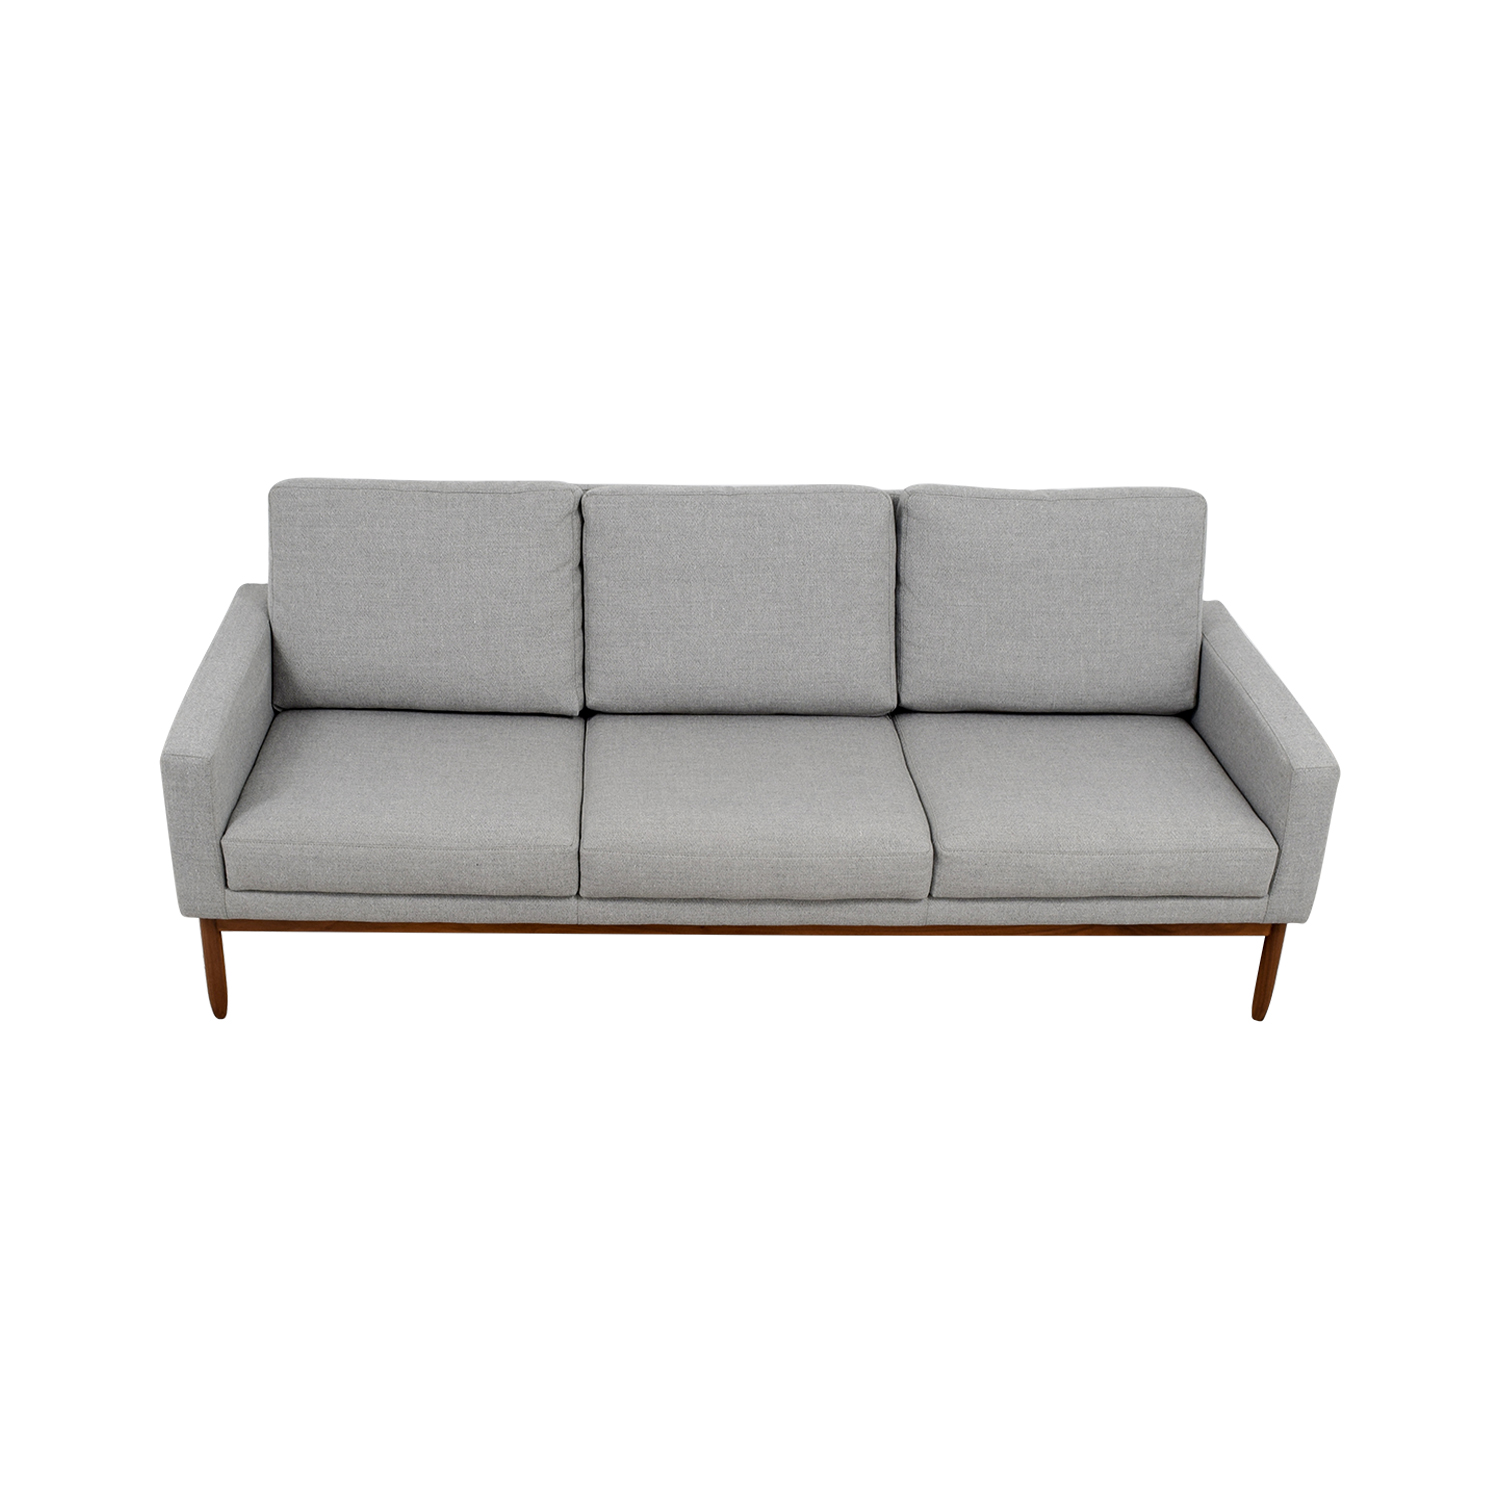 Design Within Reach Design Within Reach Raleigh Light Grey Ducale Wool Sofa for sale